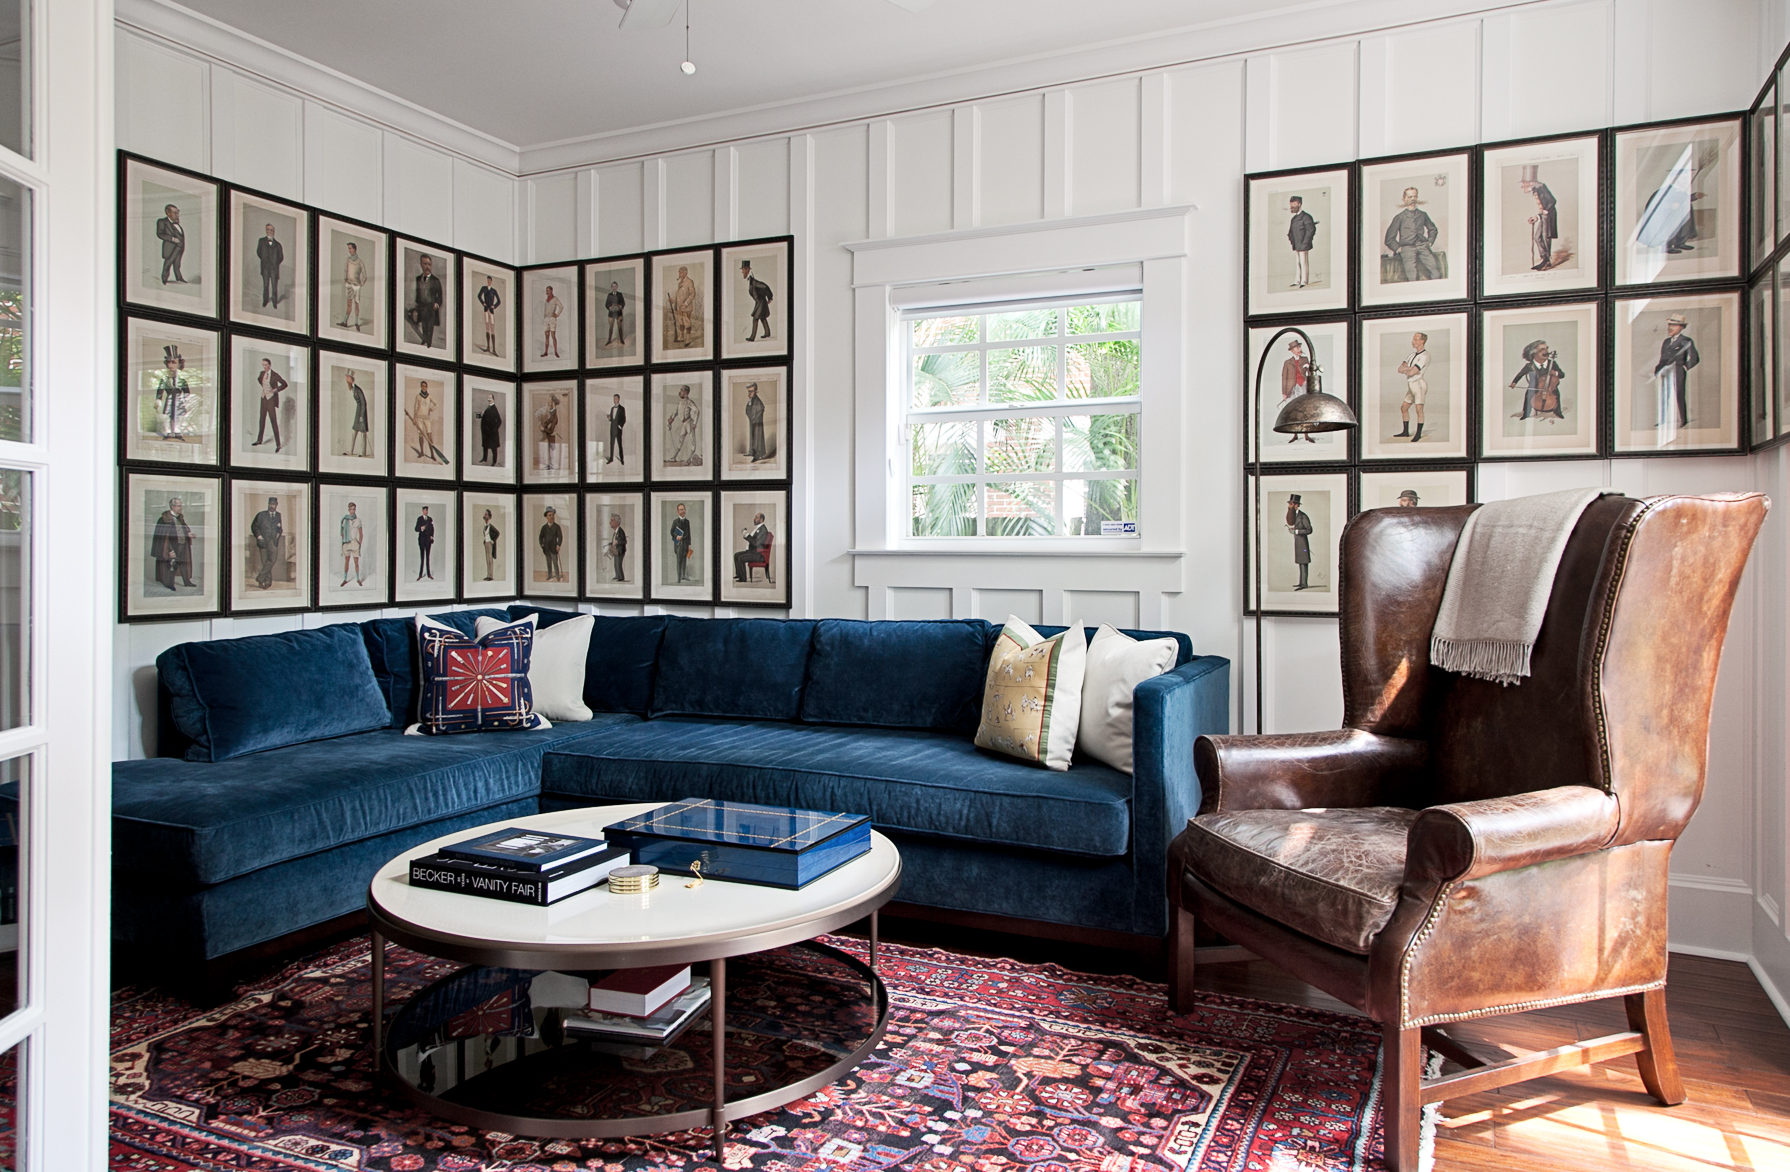 Custom Framing and Installation by ARTicles Art Gallery - designed by Lisa Gilmore Design